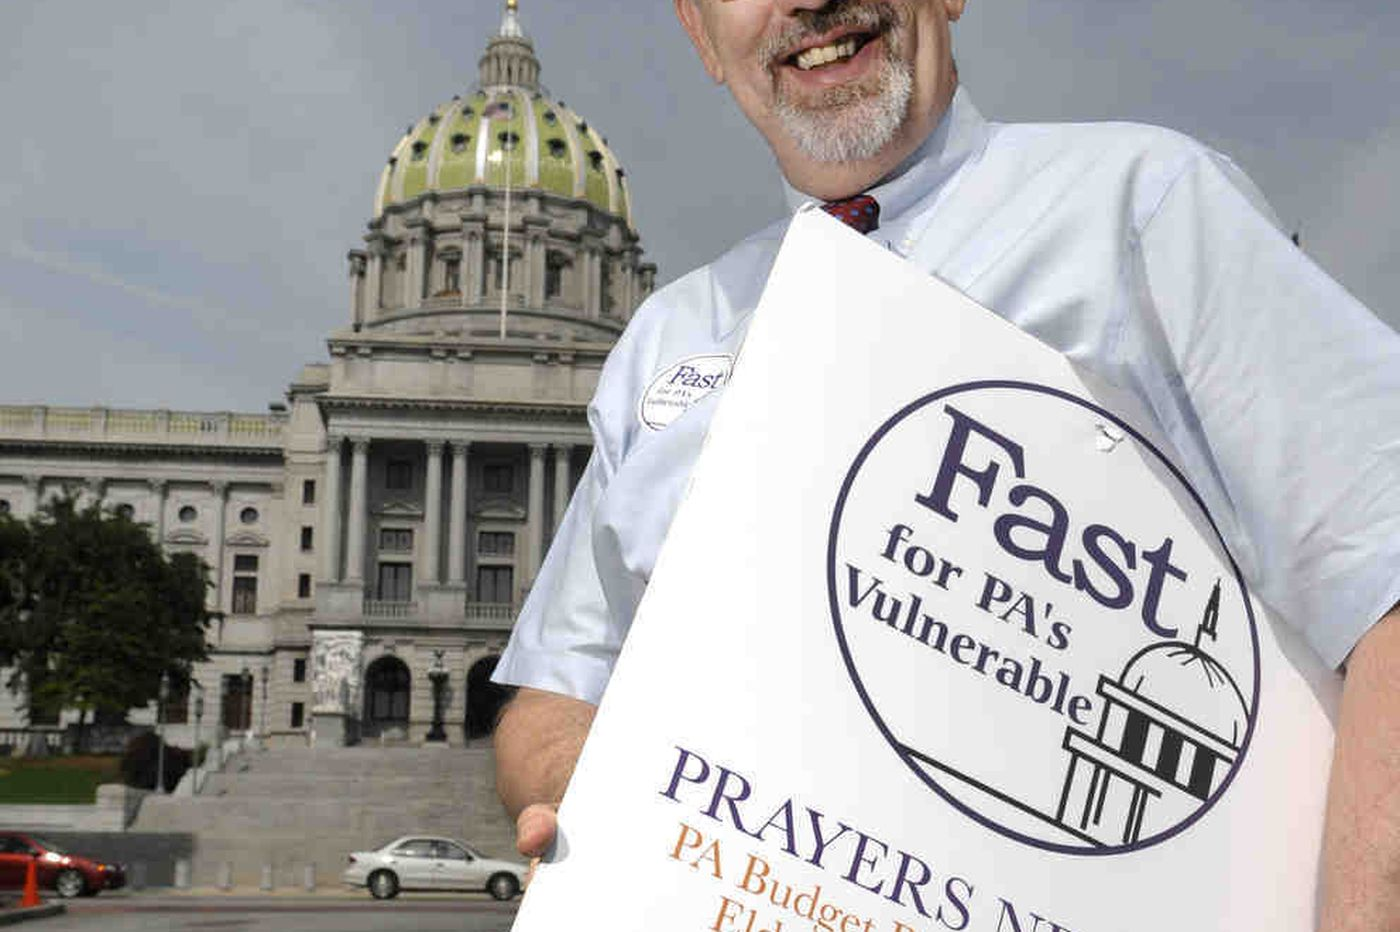 In Pennsylvania capital, former spokesman fights powers he once promoted